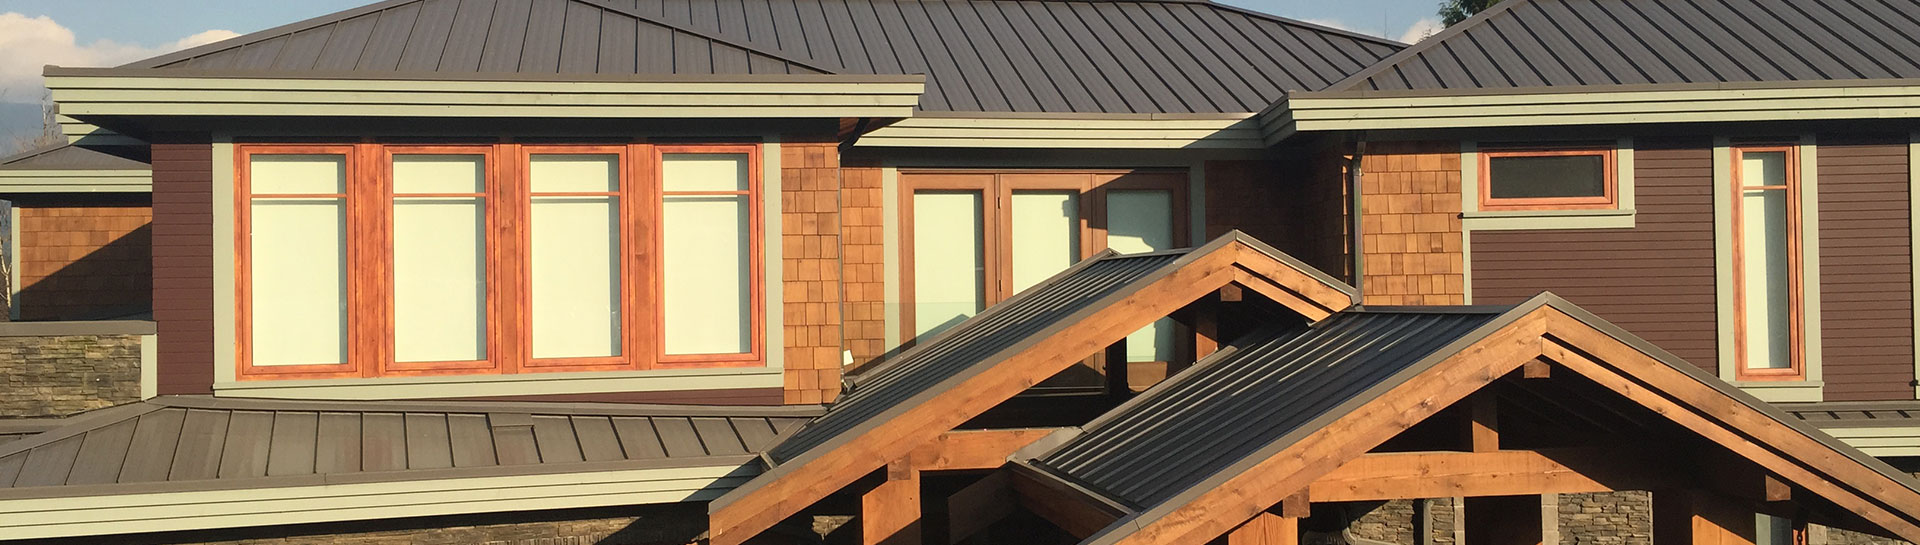 Superior ConwayRoofing | Conway Roofing Canada